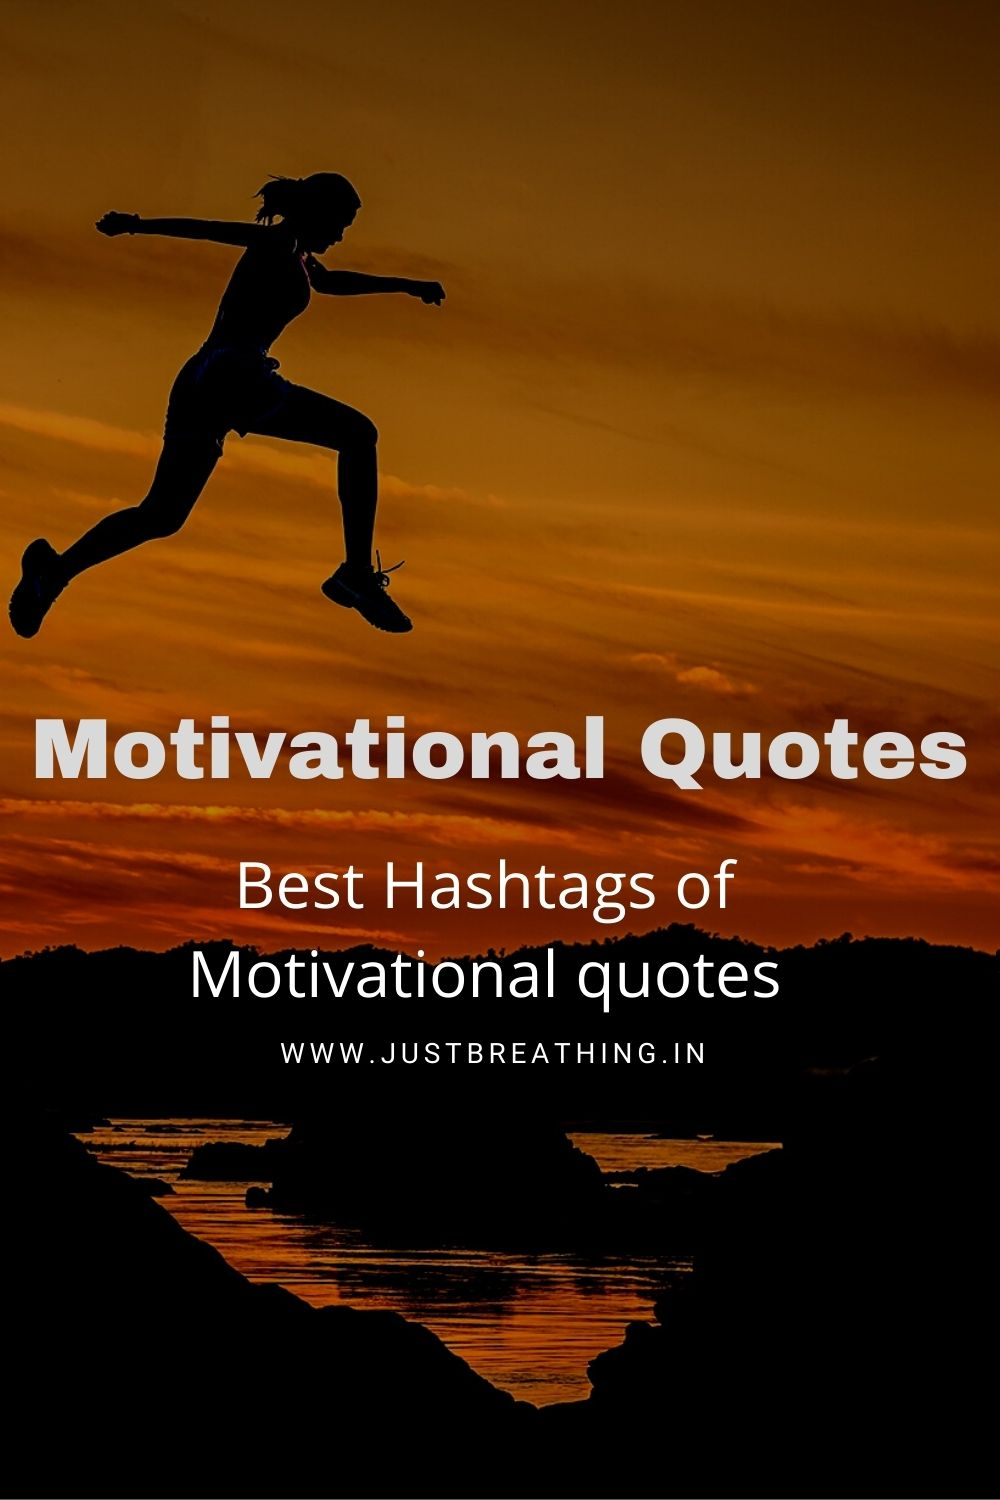 Best motivational quotes hashtags for inspirational quotes.